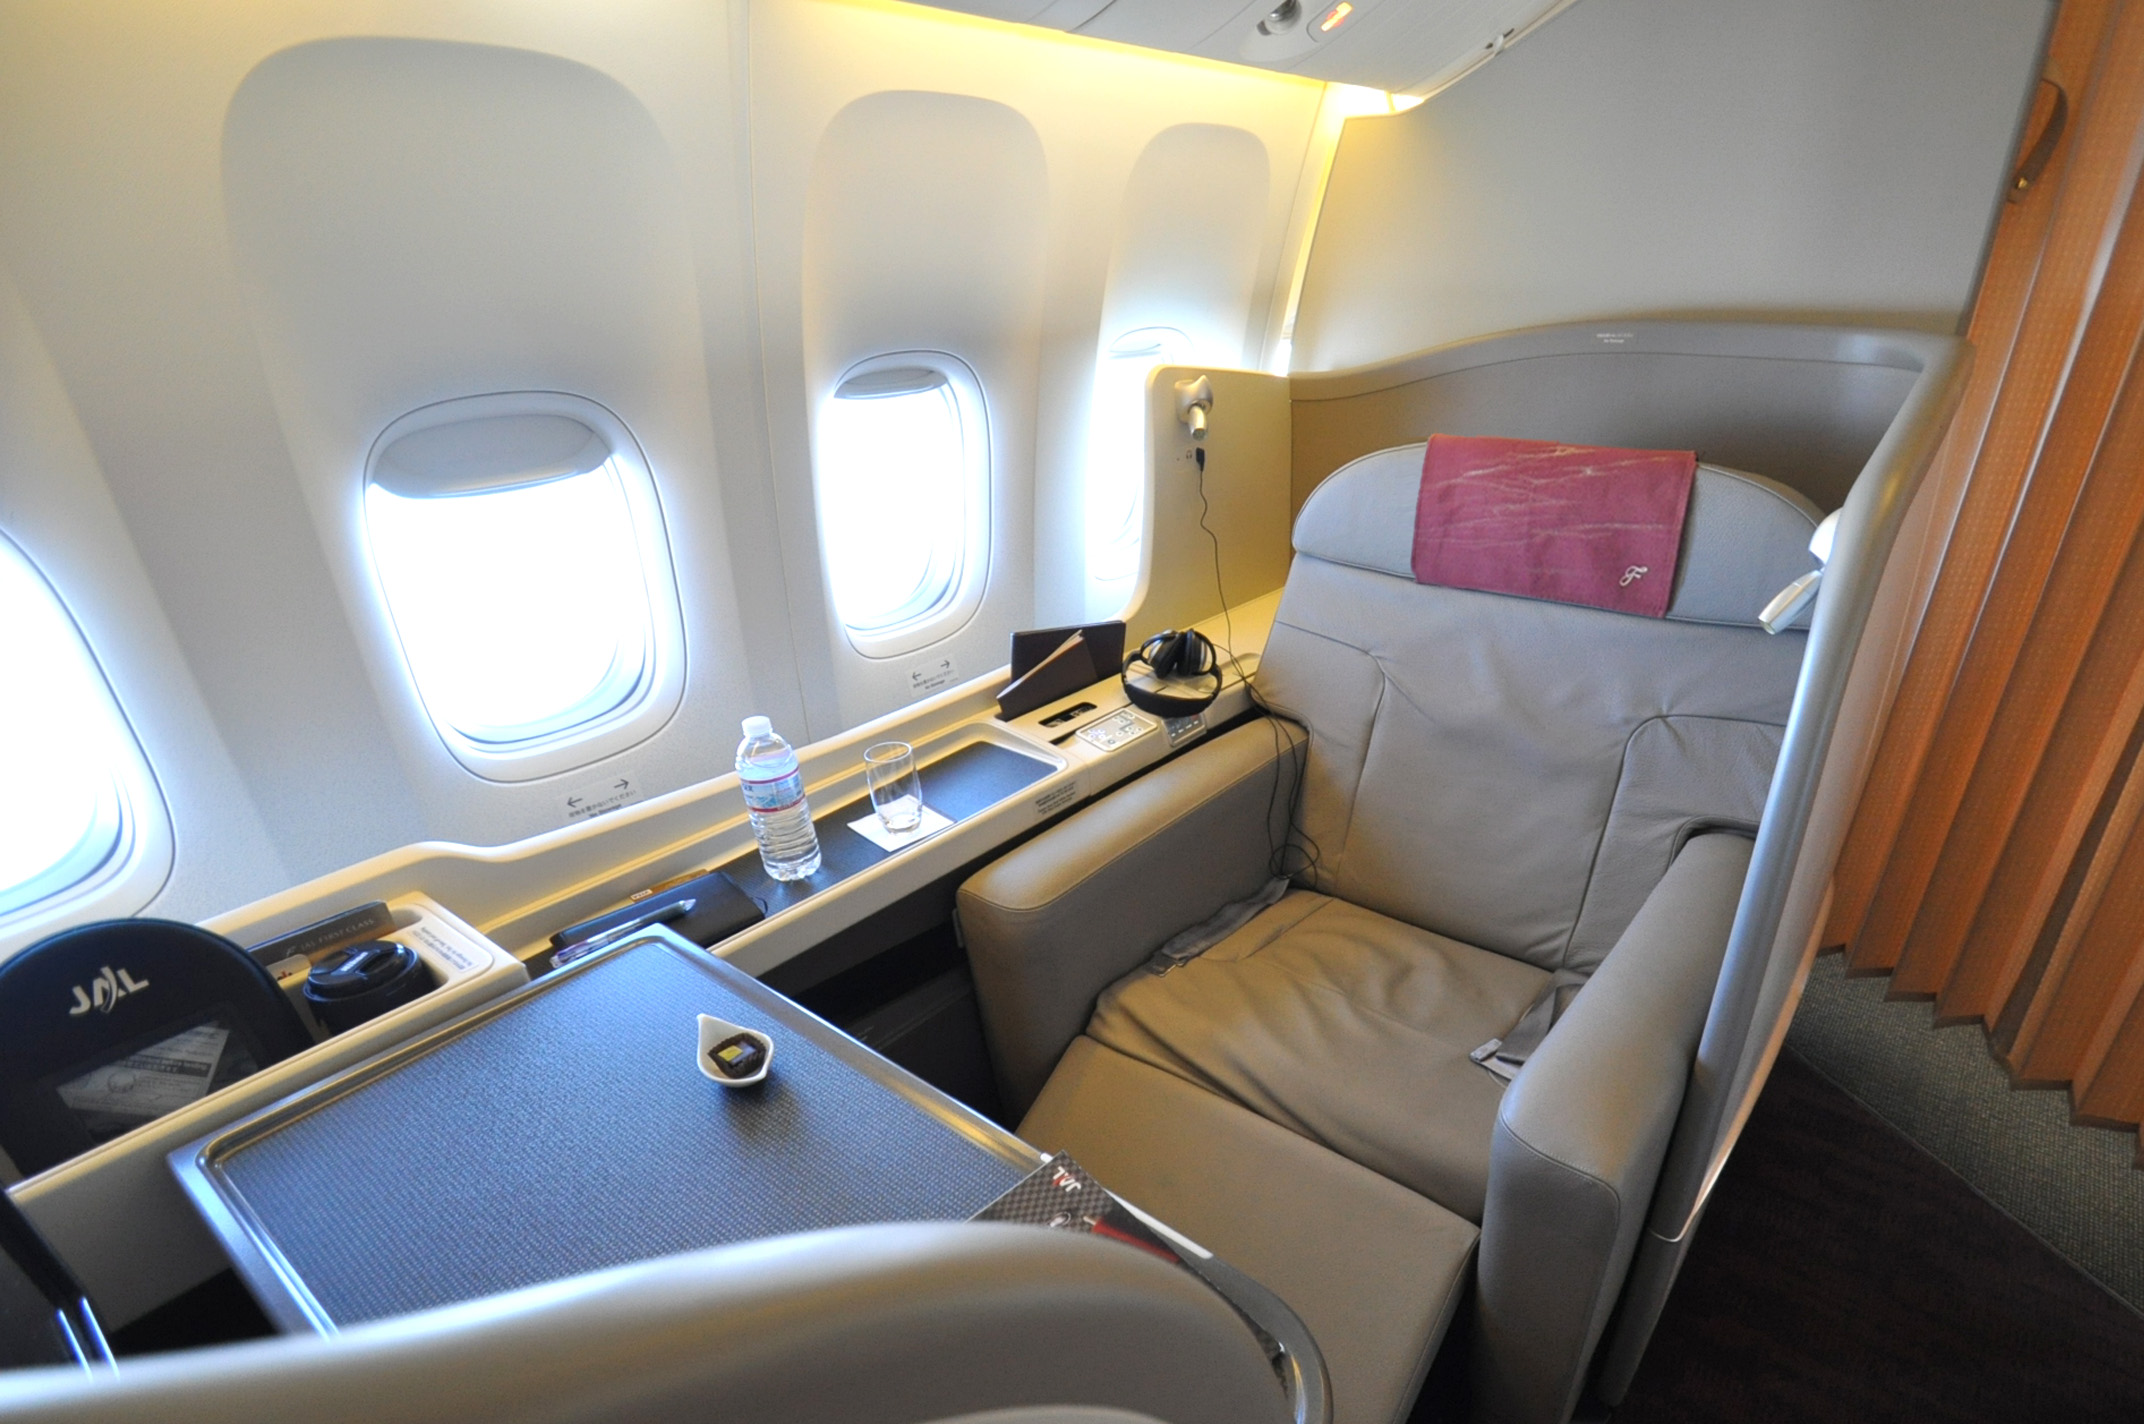 Commons wikimedia org for First class suite airline